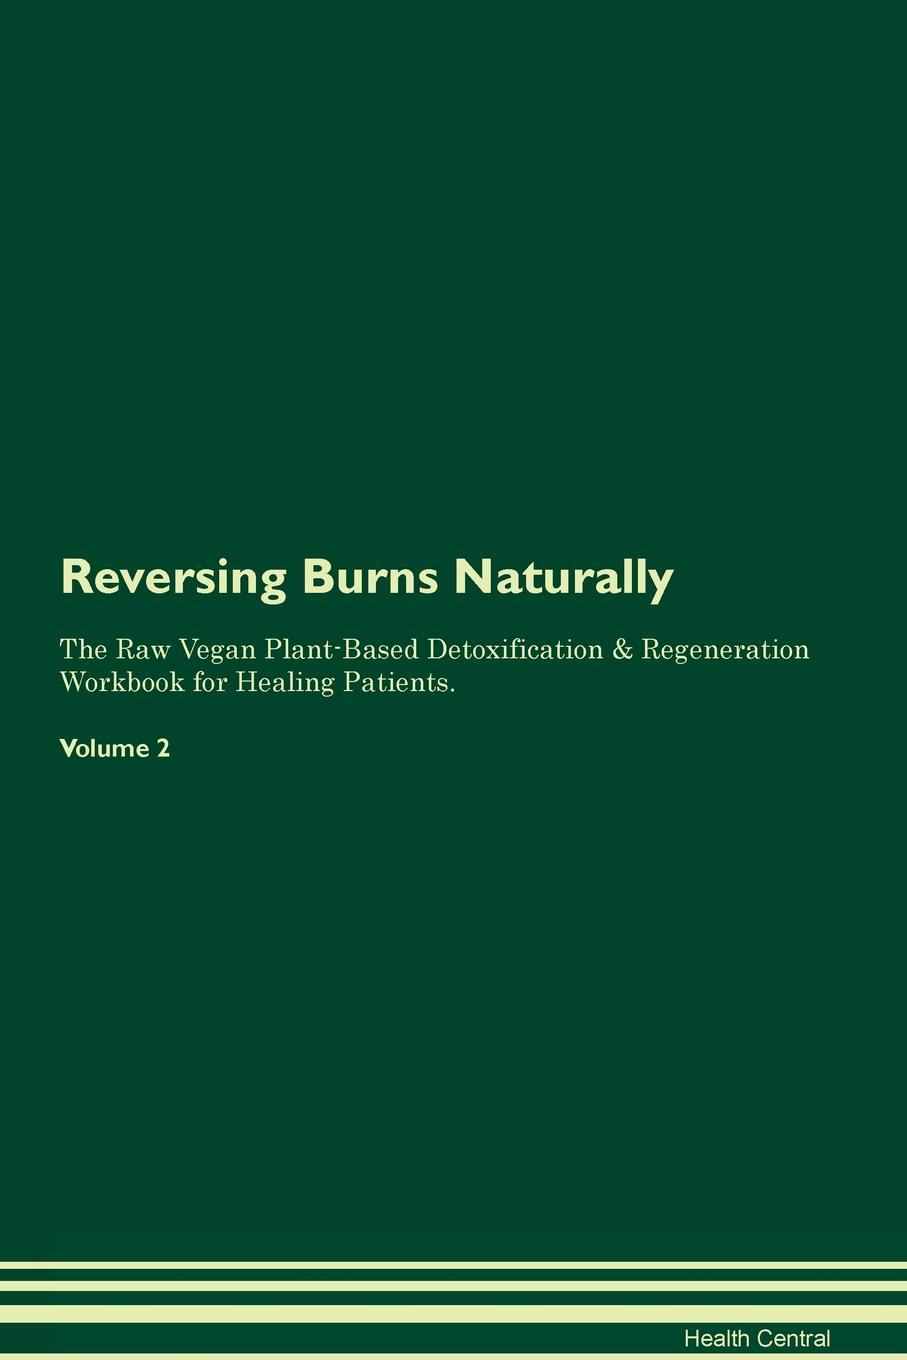 Health Central Reversing Burns Naturally The Raw Vegan Plant-Based Detoxification & Regeneration Workbook for Healing Patients. Volume 2 george burns w happiness healing enhancement your casebook collection for applying positive psychology in therapy